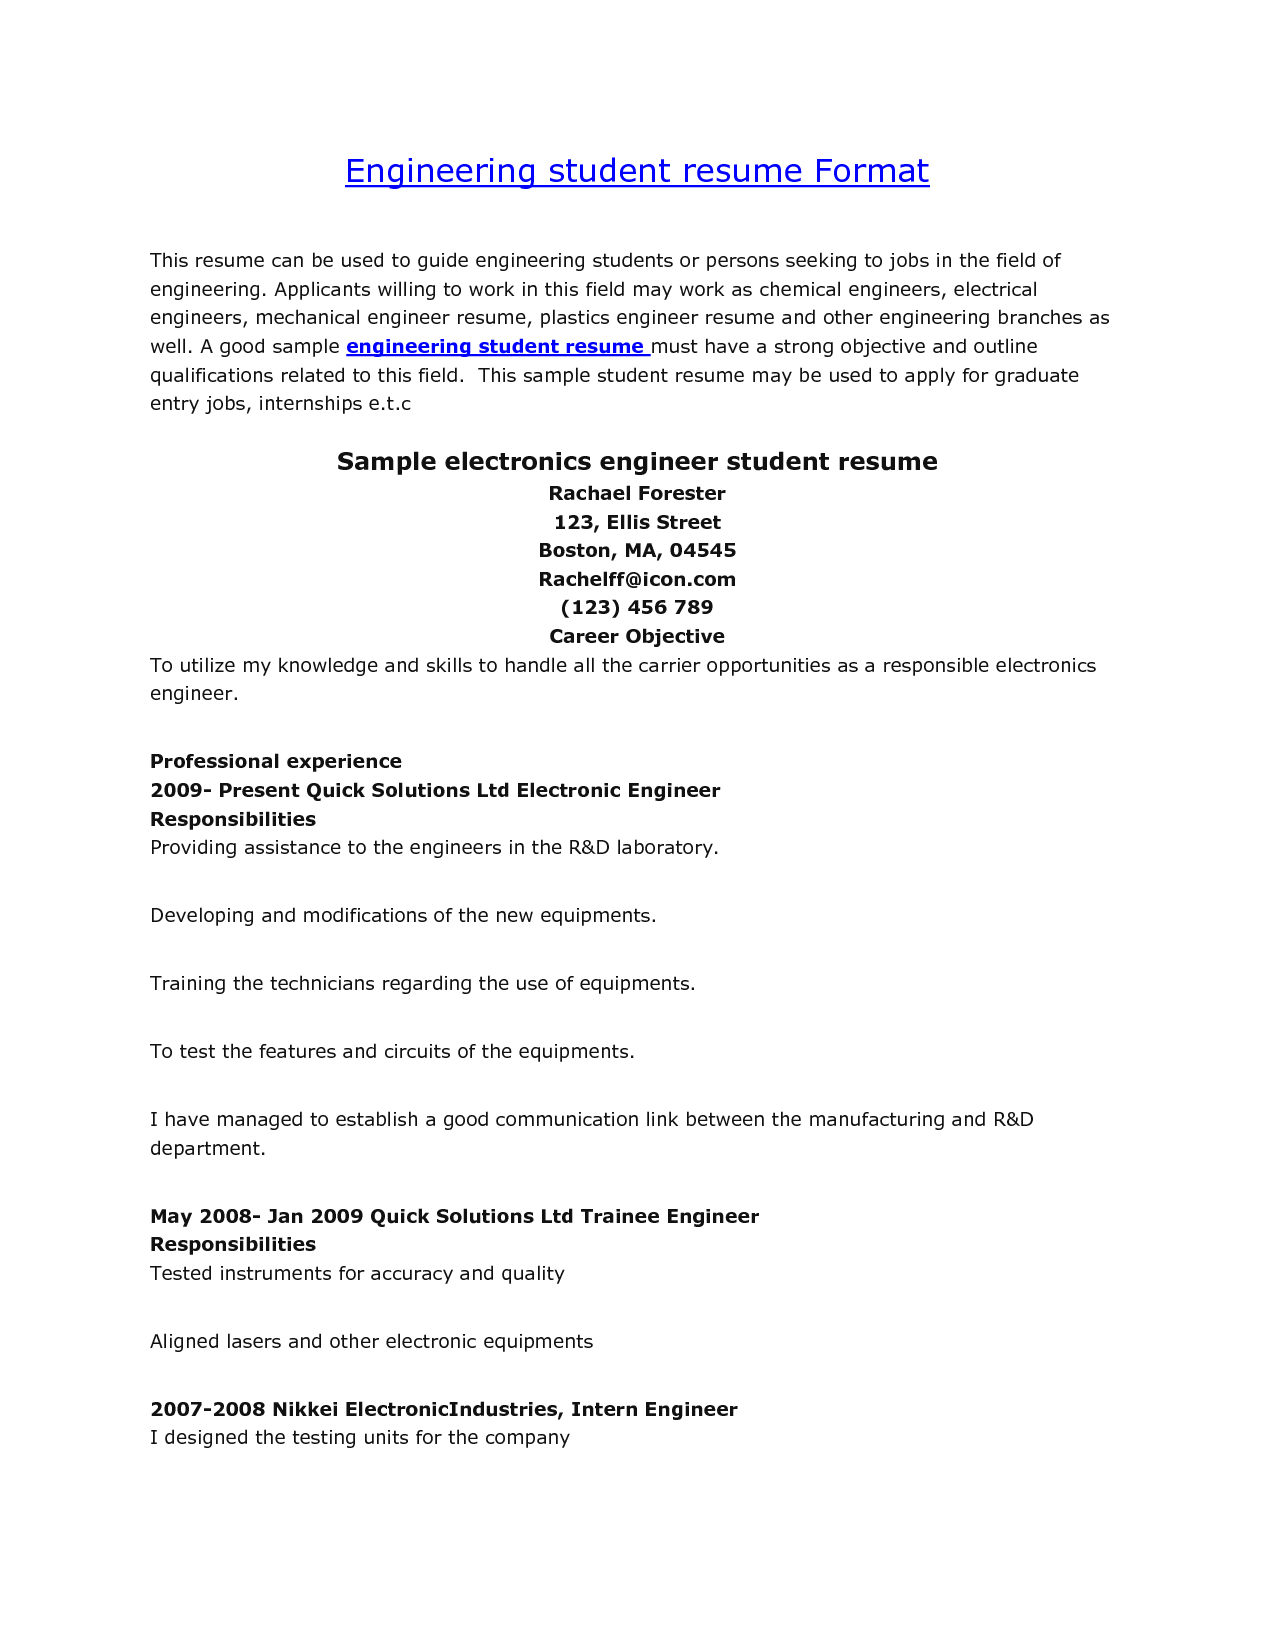 Resume Templates Google Drive Resume Format For Engineering Students  Httpwwwjobresume